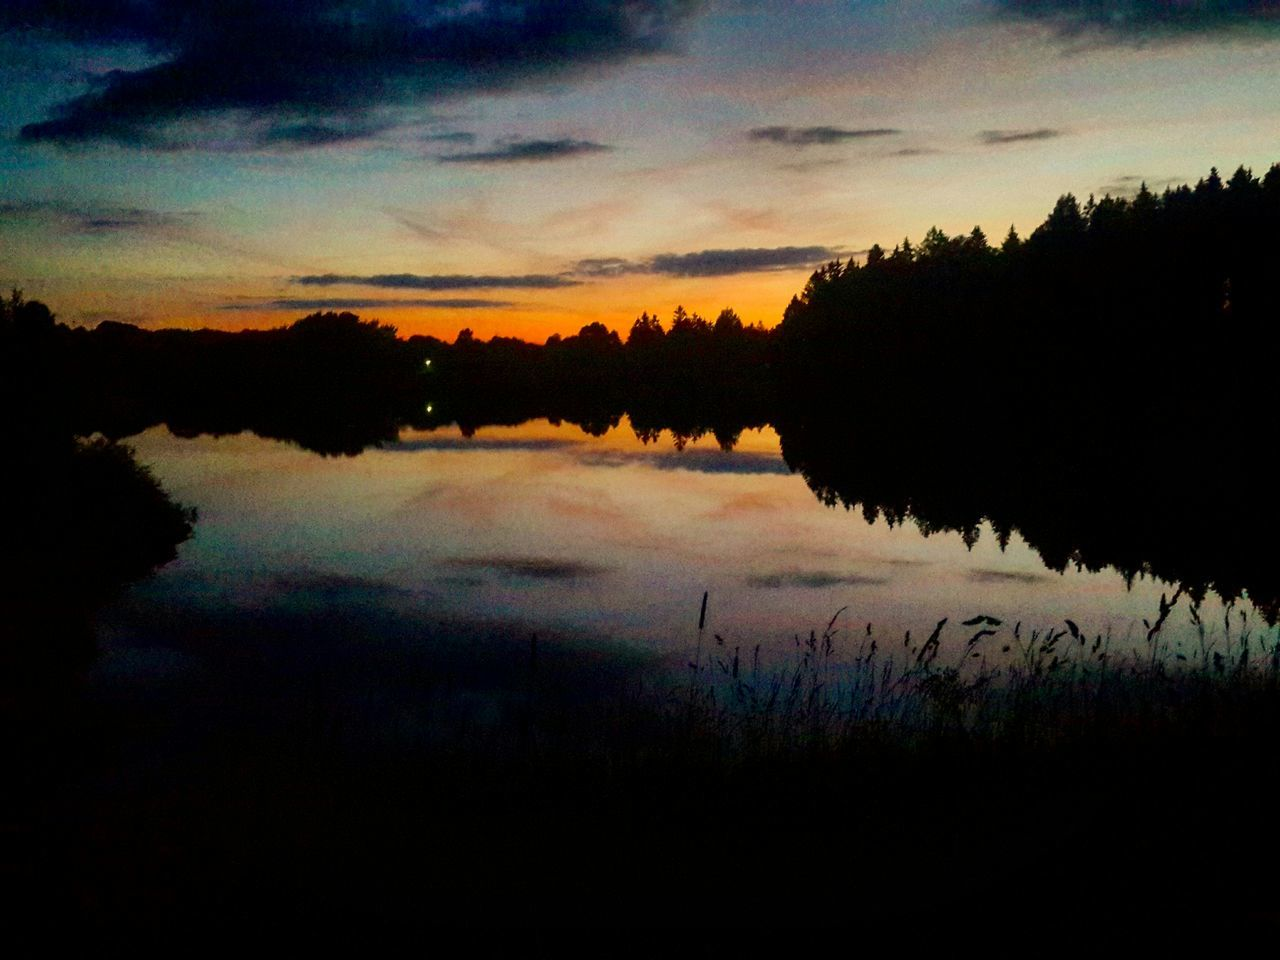 sky, silhouette, cloud - sky, sunset, nature, scenics, tranquil scene, lake, beauty in nature, reflection, tranquility, water, outdoors, dusk, landscape, tree, no people, growth, travel destinations, plant, grass, day